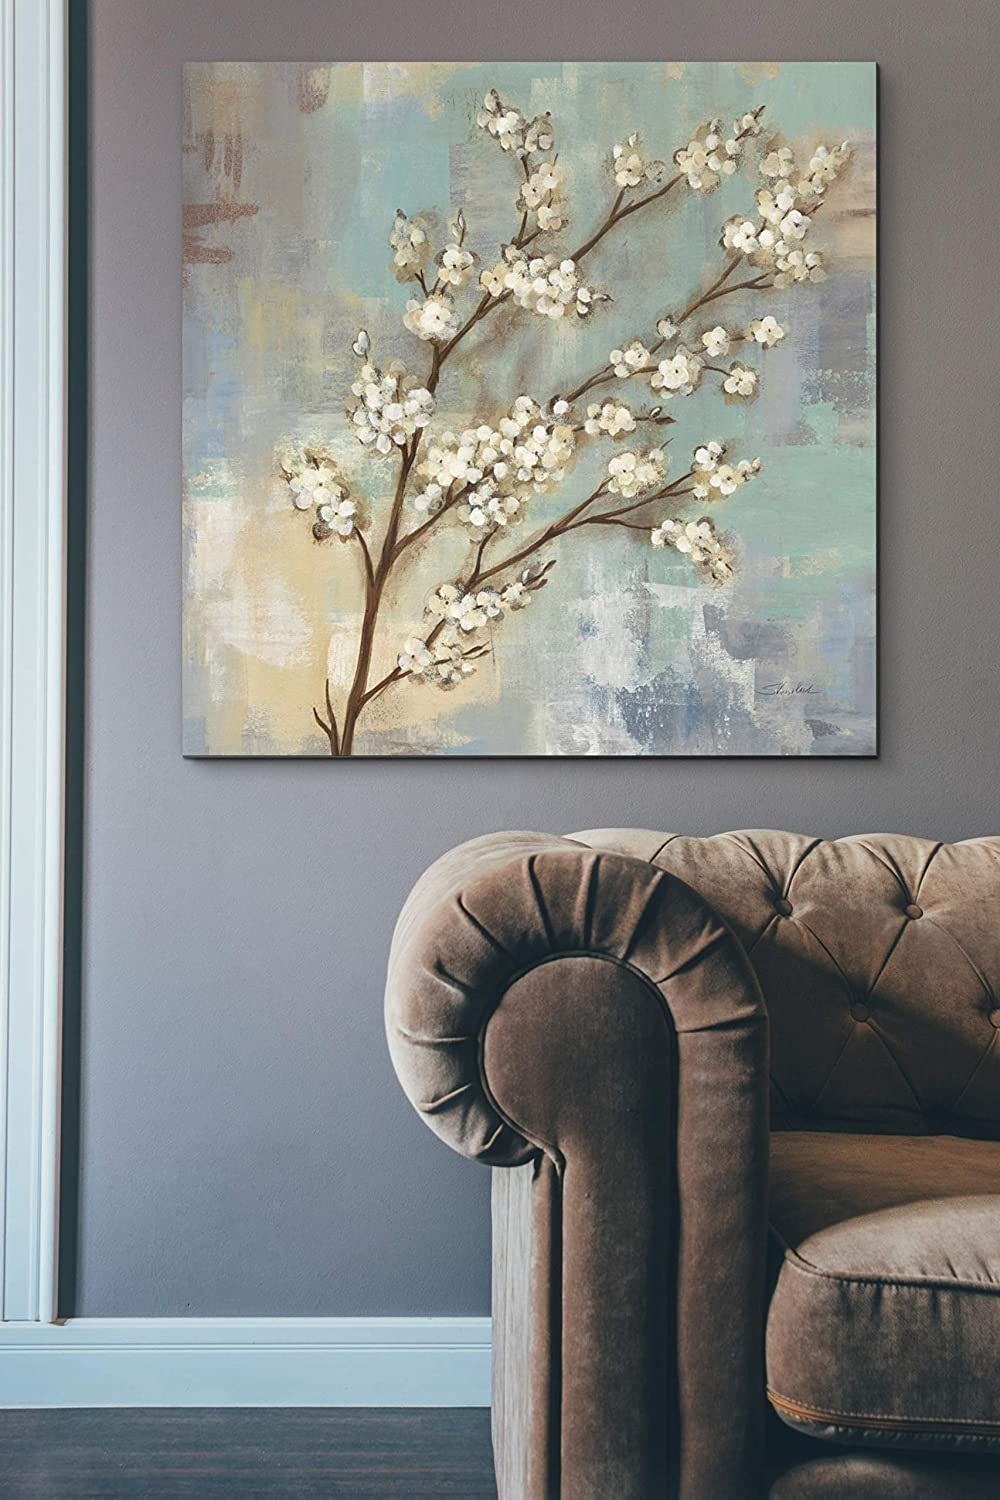 Epic Graffiti Kyoto Blossoms I Giclee Canvas Wall Art 26 x 26 Green